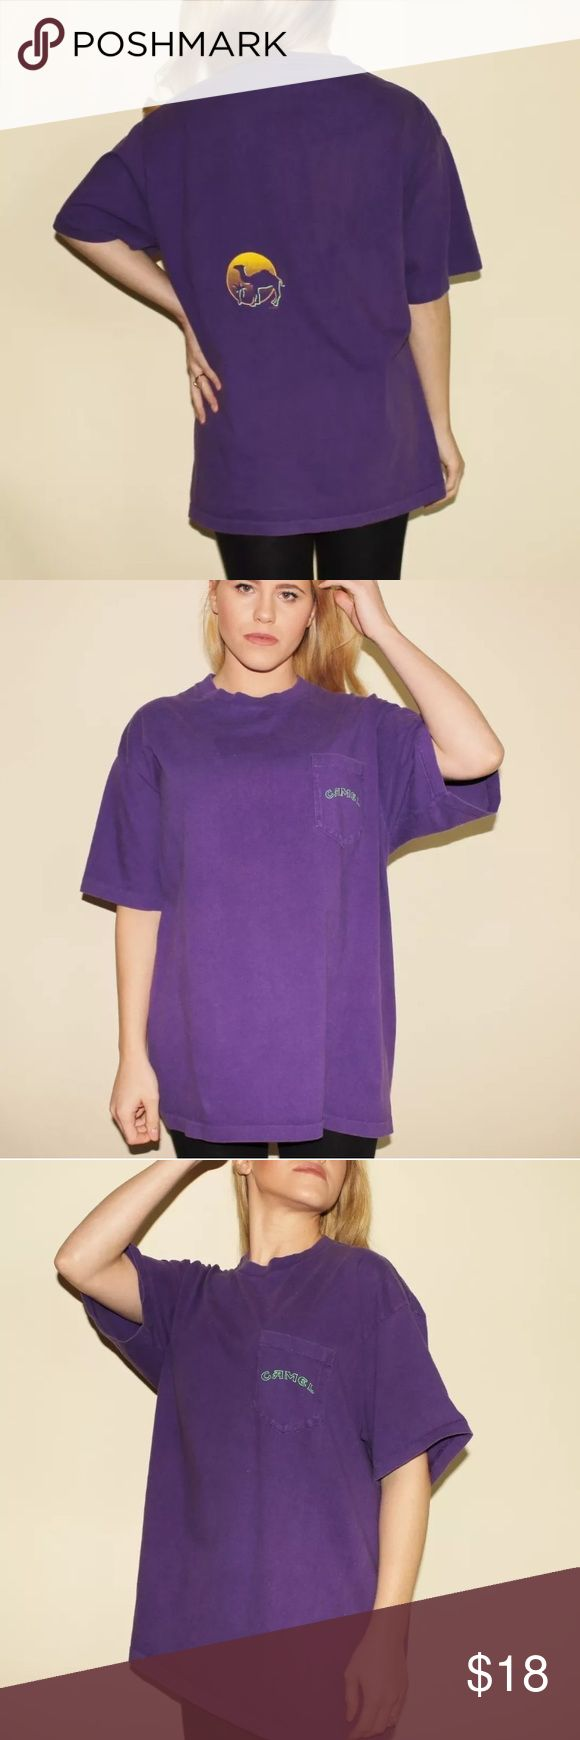 """Camel Cigarettes Tee Shirt CAMEL T Shirt Purple L 